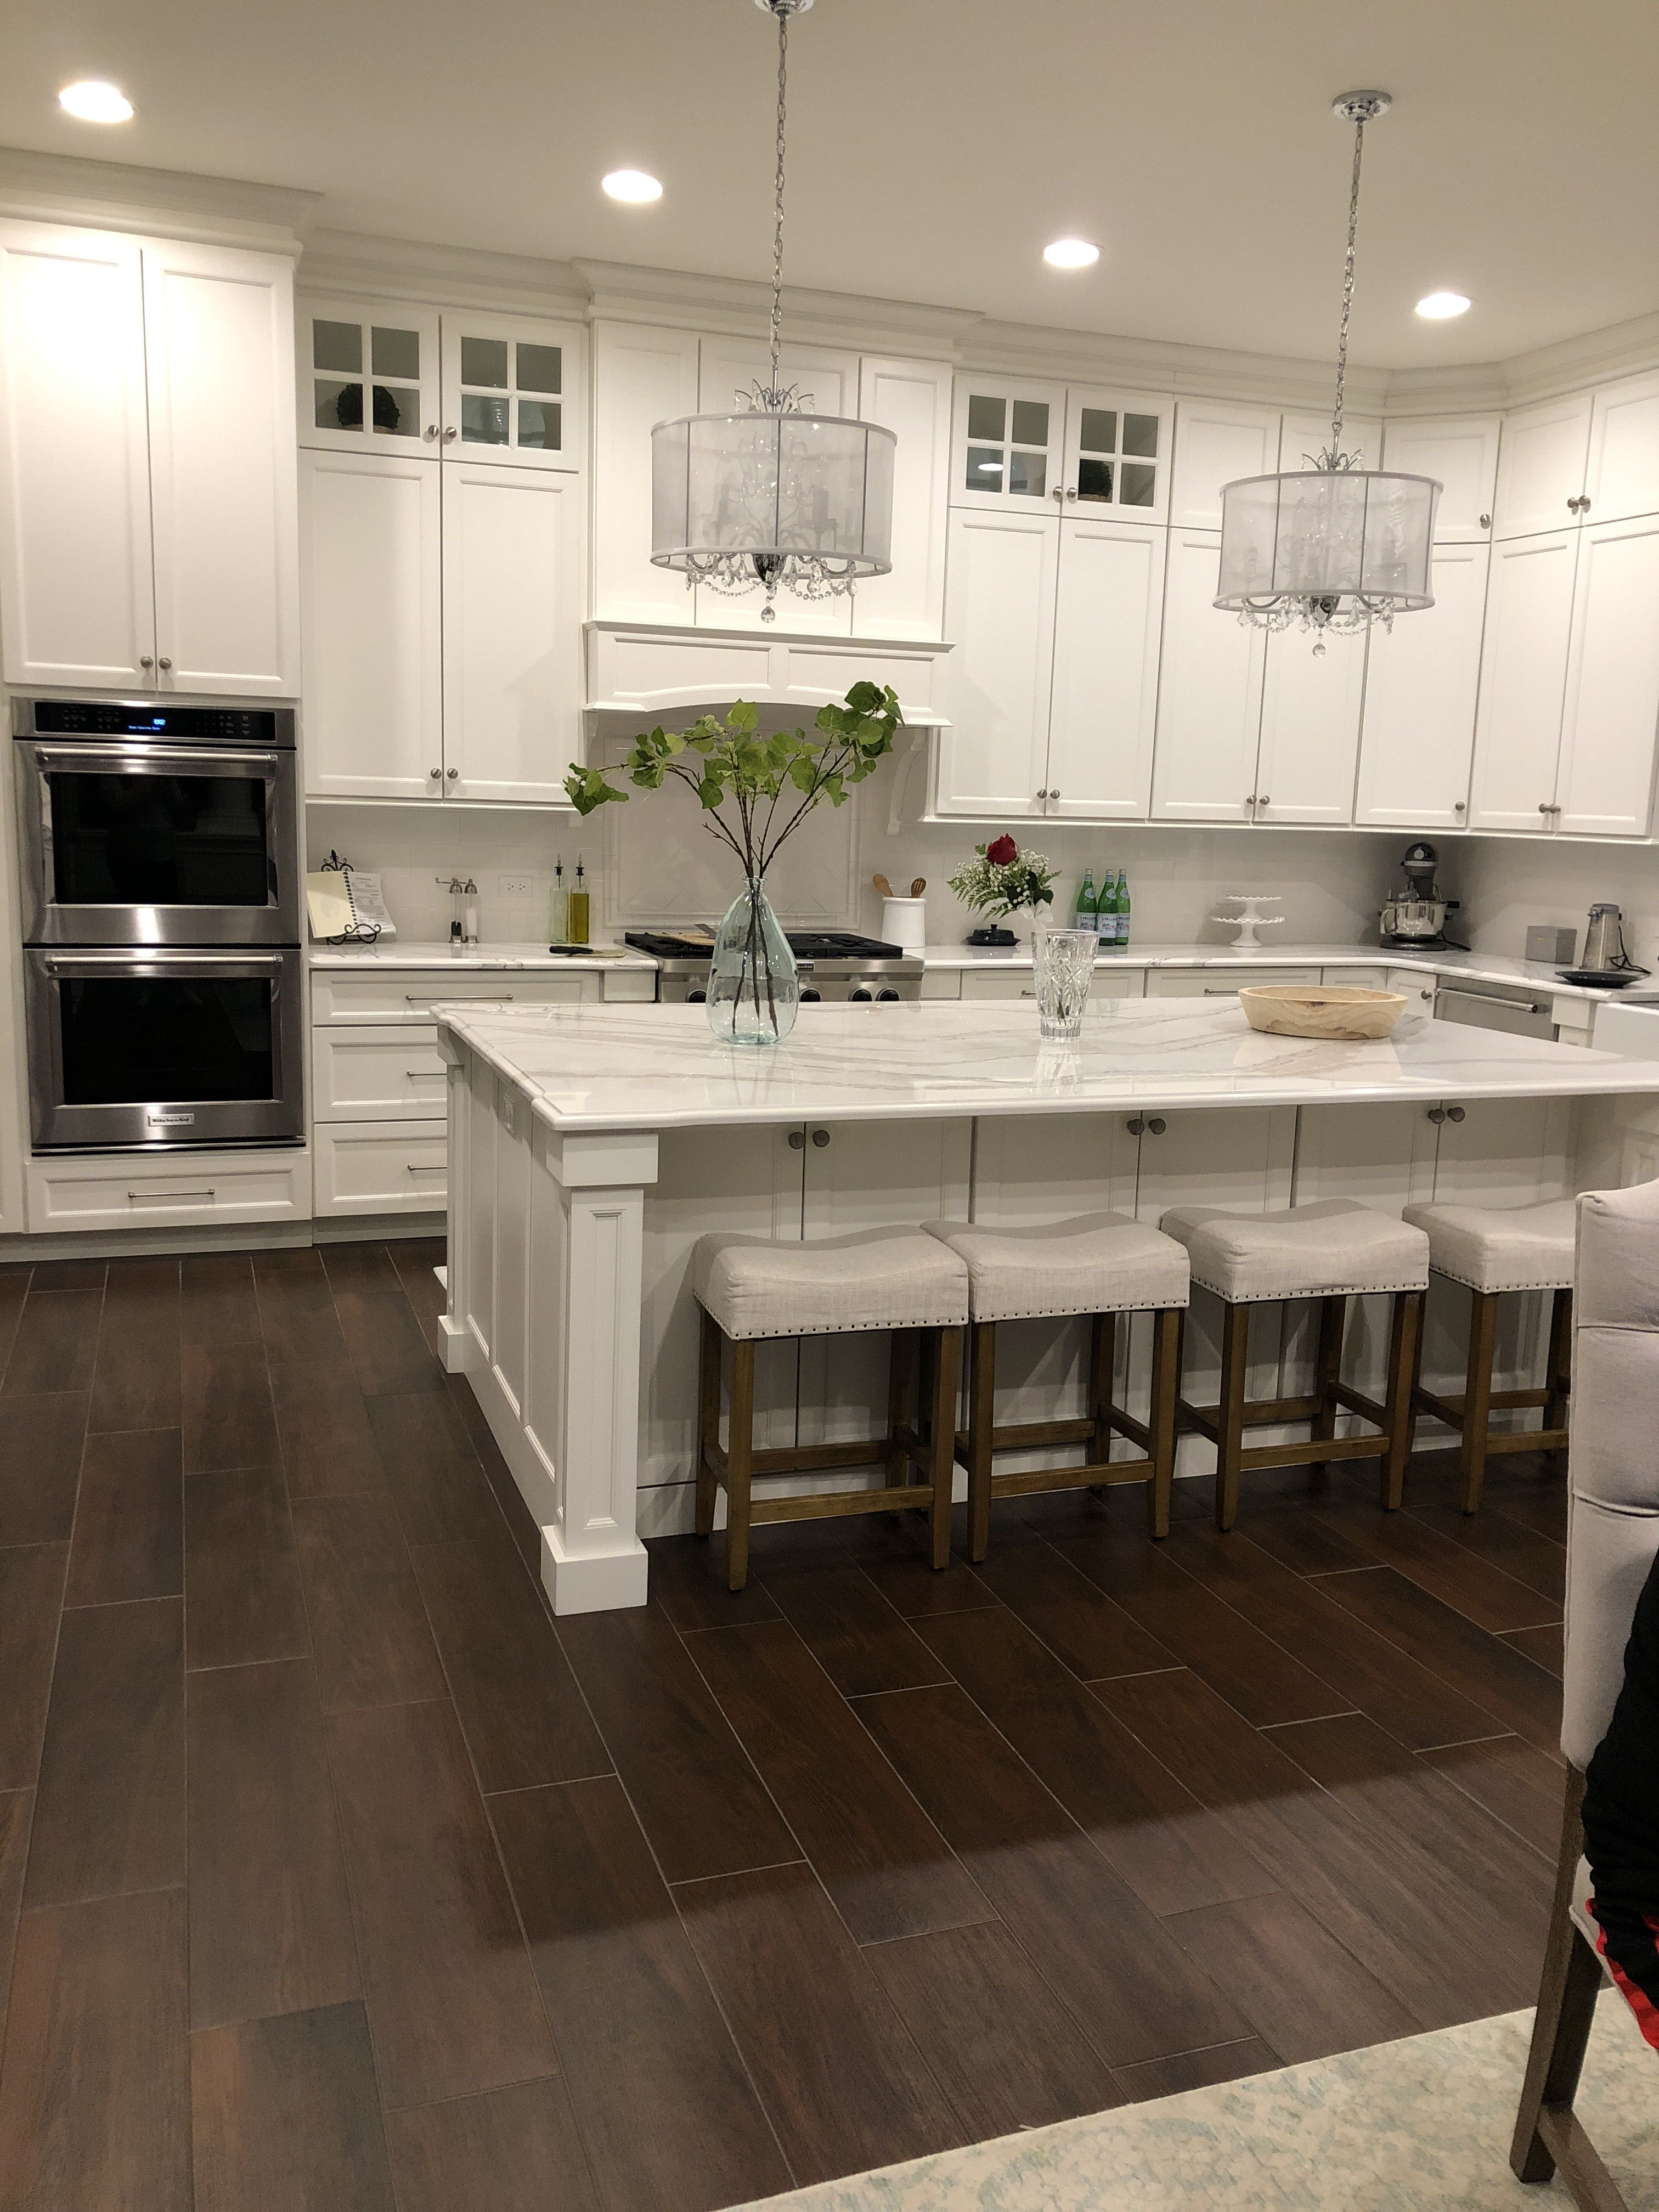 15 Ideas To Decorate The White Cabinets For Your Kitchen Condo